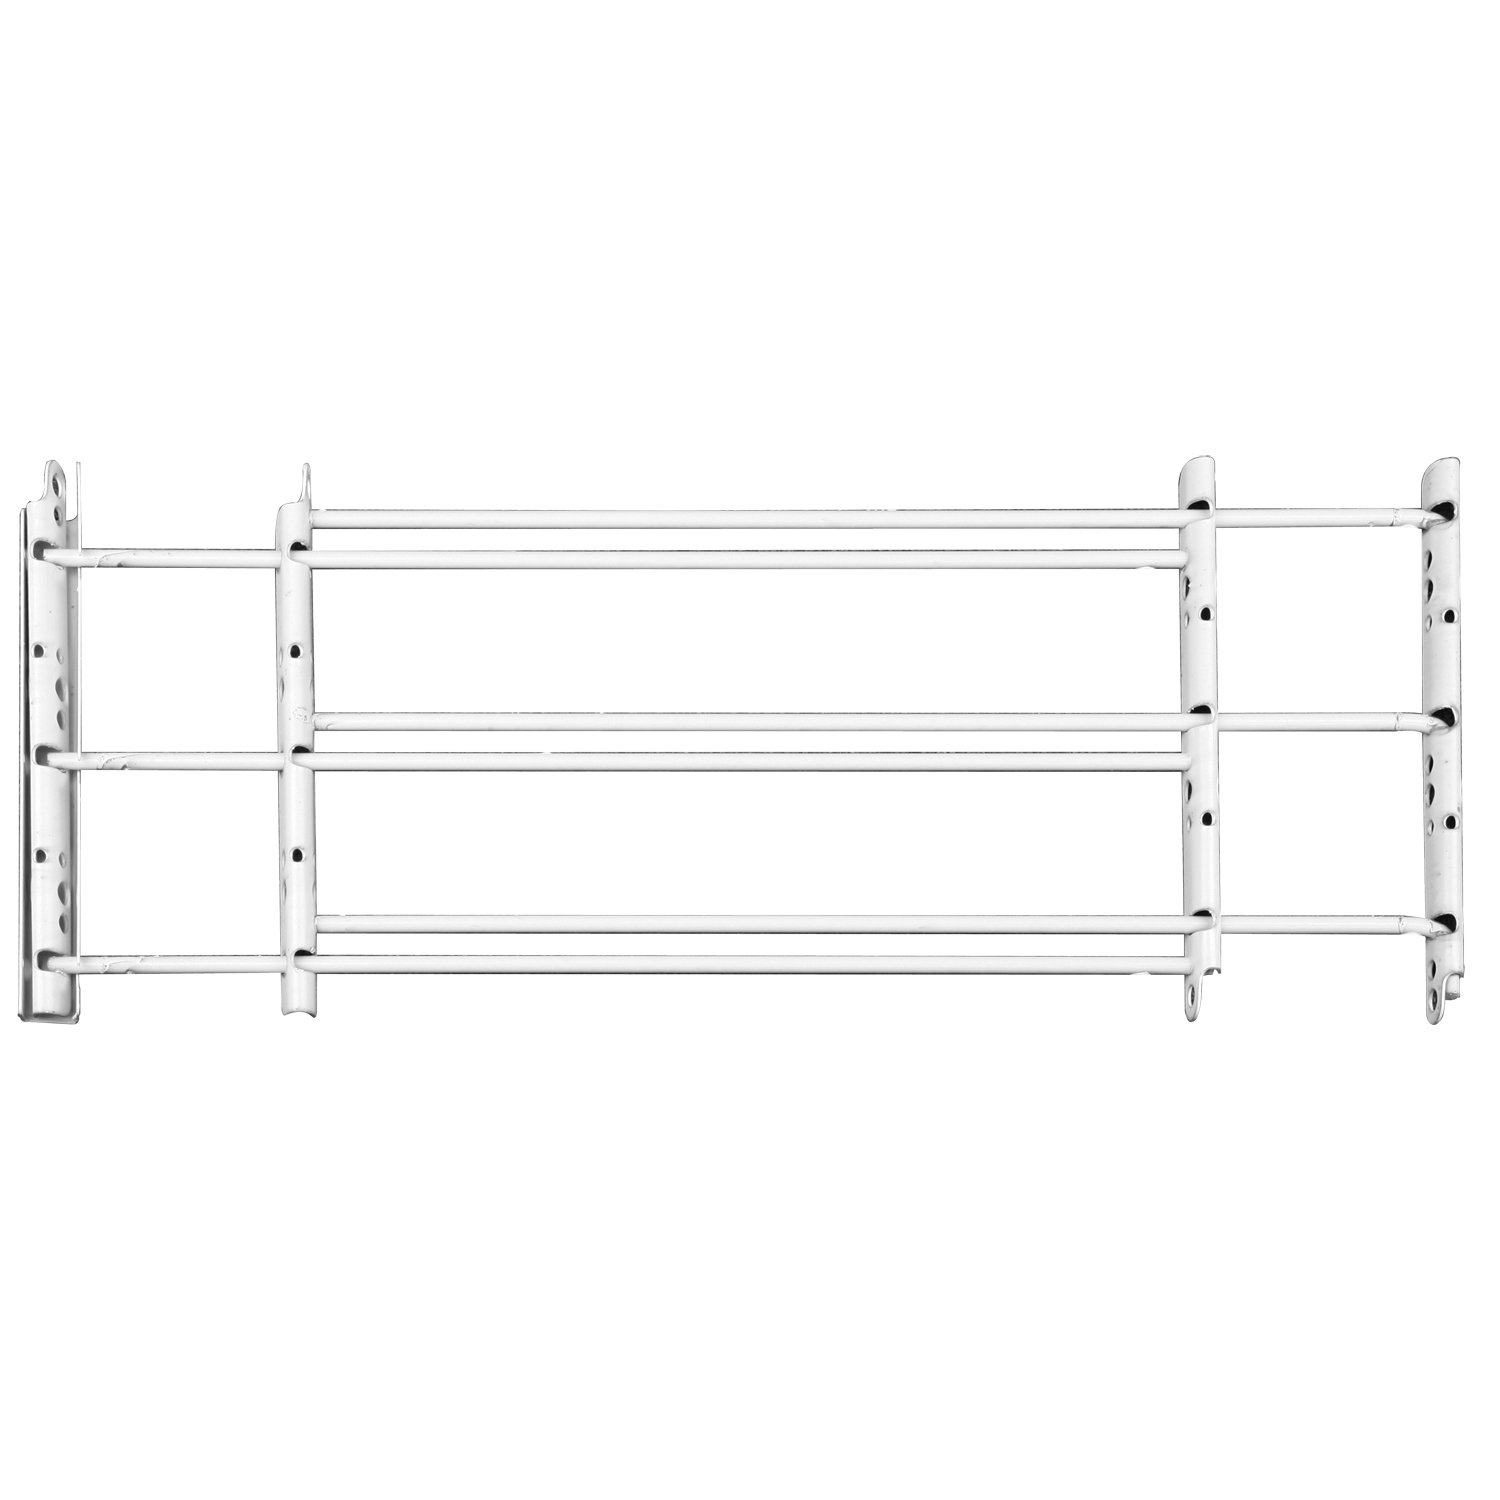 John Sterling BK-1133 3Bar Basic Fixed Guard 11x24-42 Inches White by Knape & Vogt